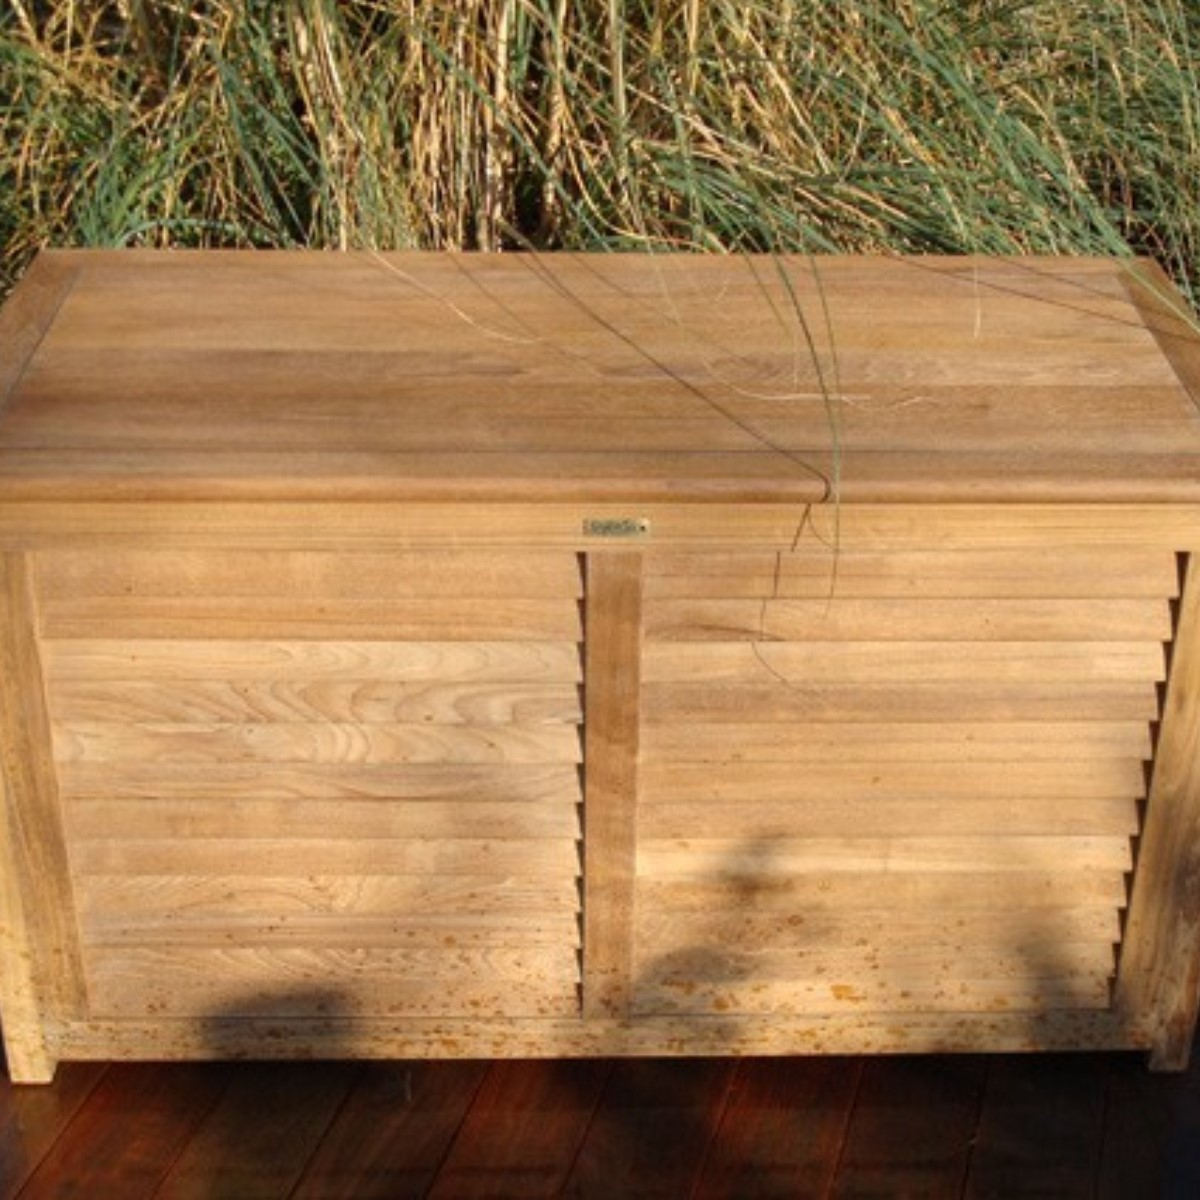 You may also need & Teak Outdoor Storage Box | Woodberry